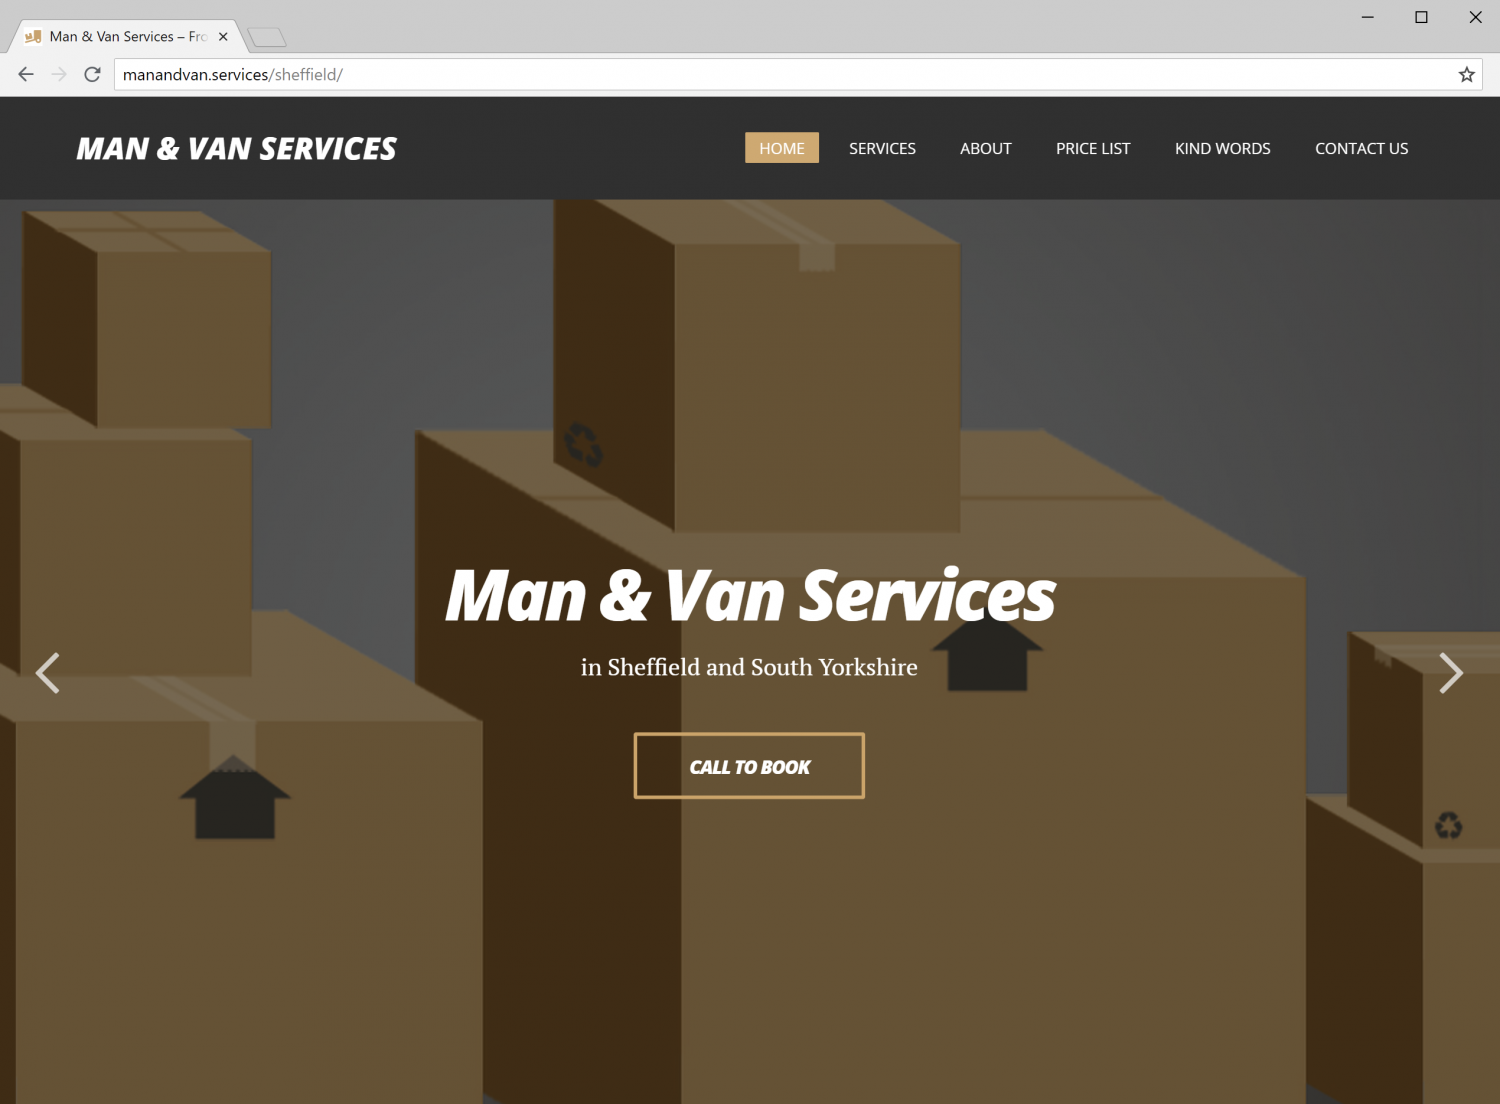 Man and Van Services Sheffield Website (home page screenshot)